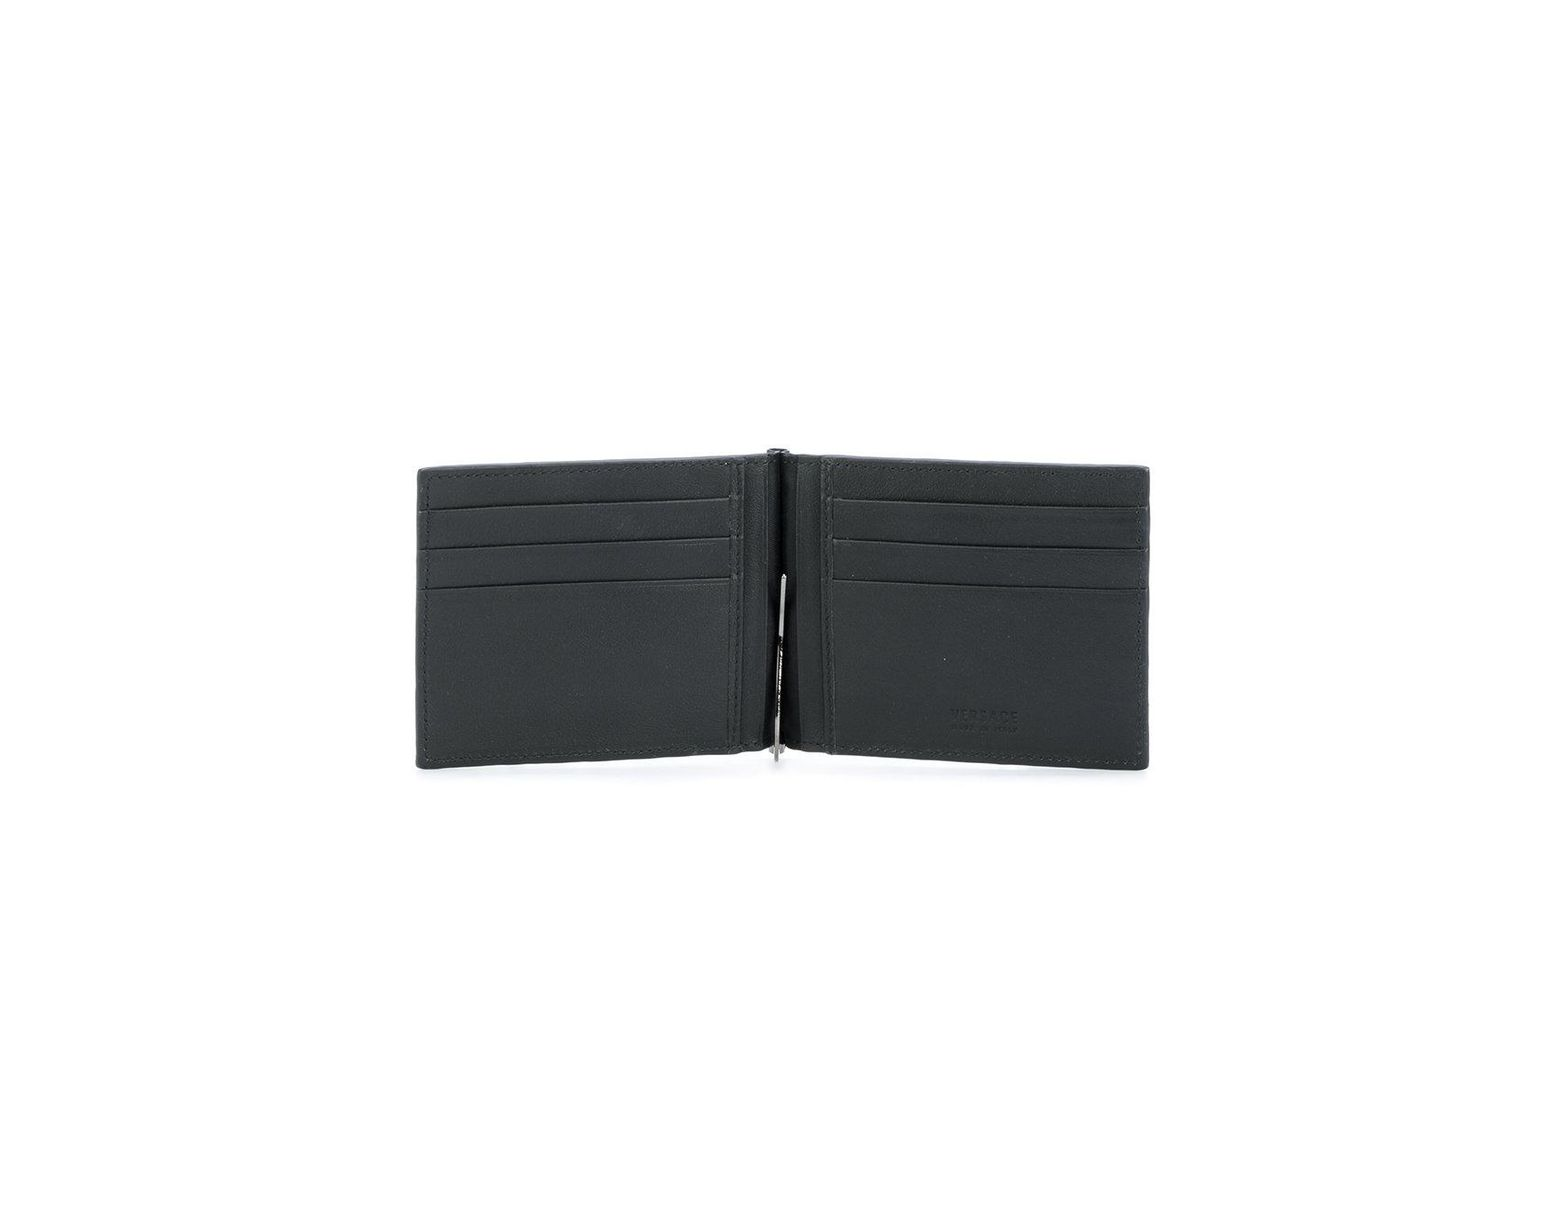 c1ebffdede Versace Embossed Greek Key Cardholder in Black for Men - Lyst